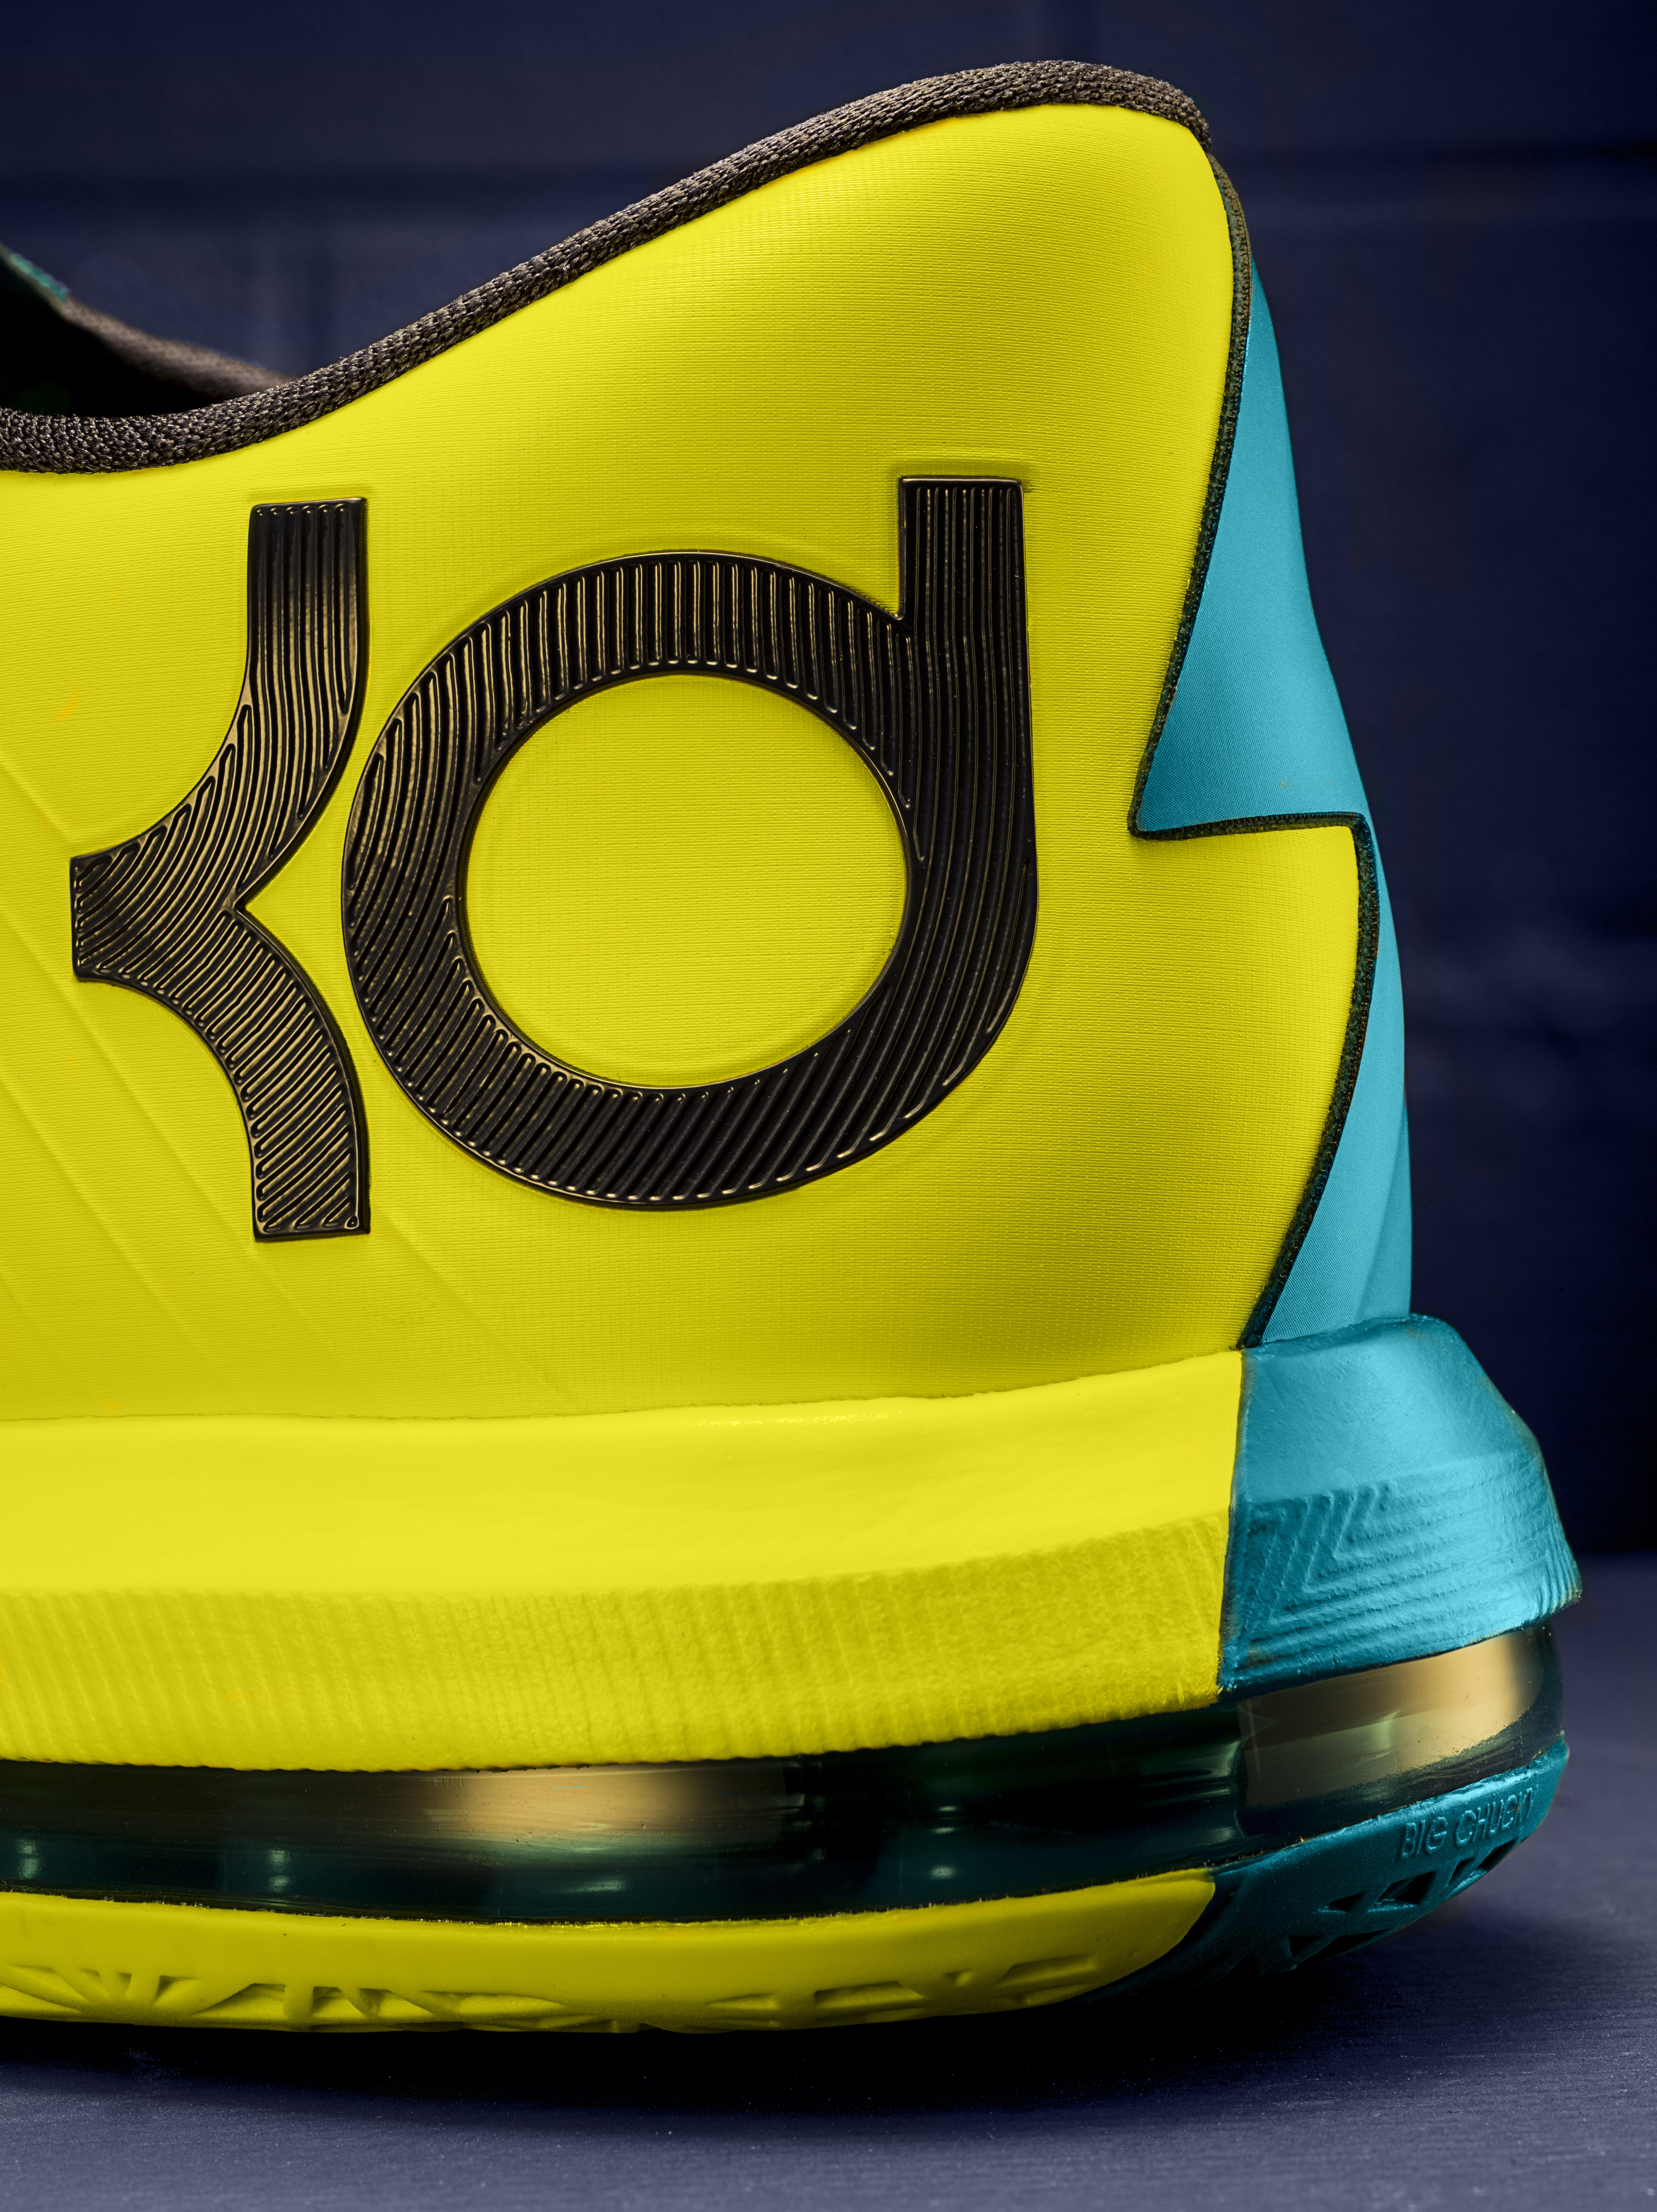 Nike News - The KD VI: Kevin Durant's Most Transformative Shoe